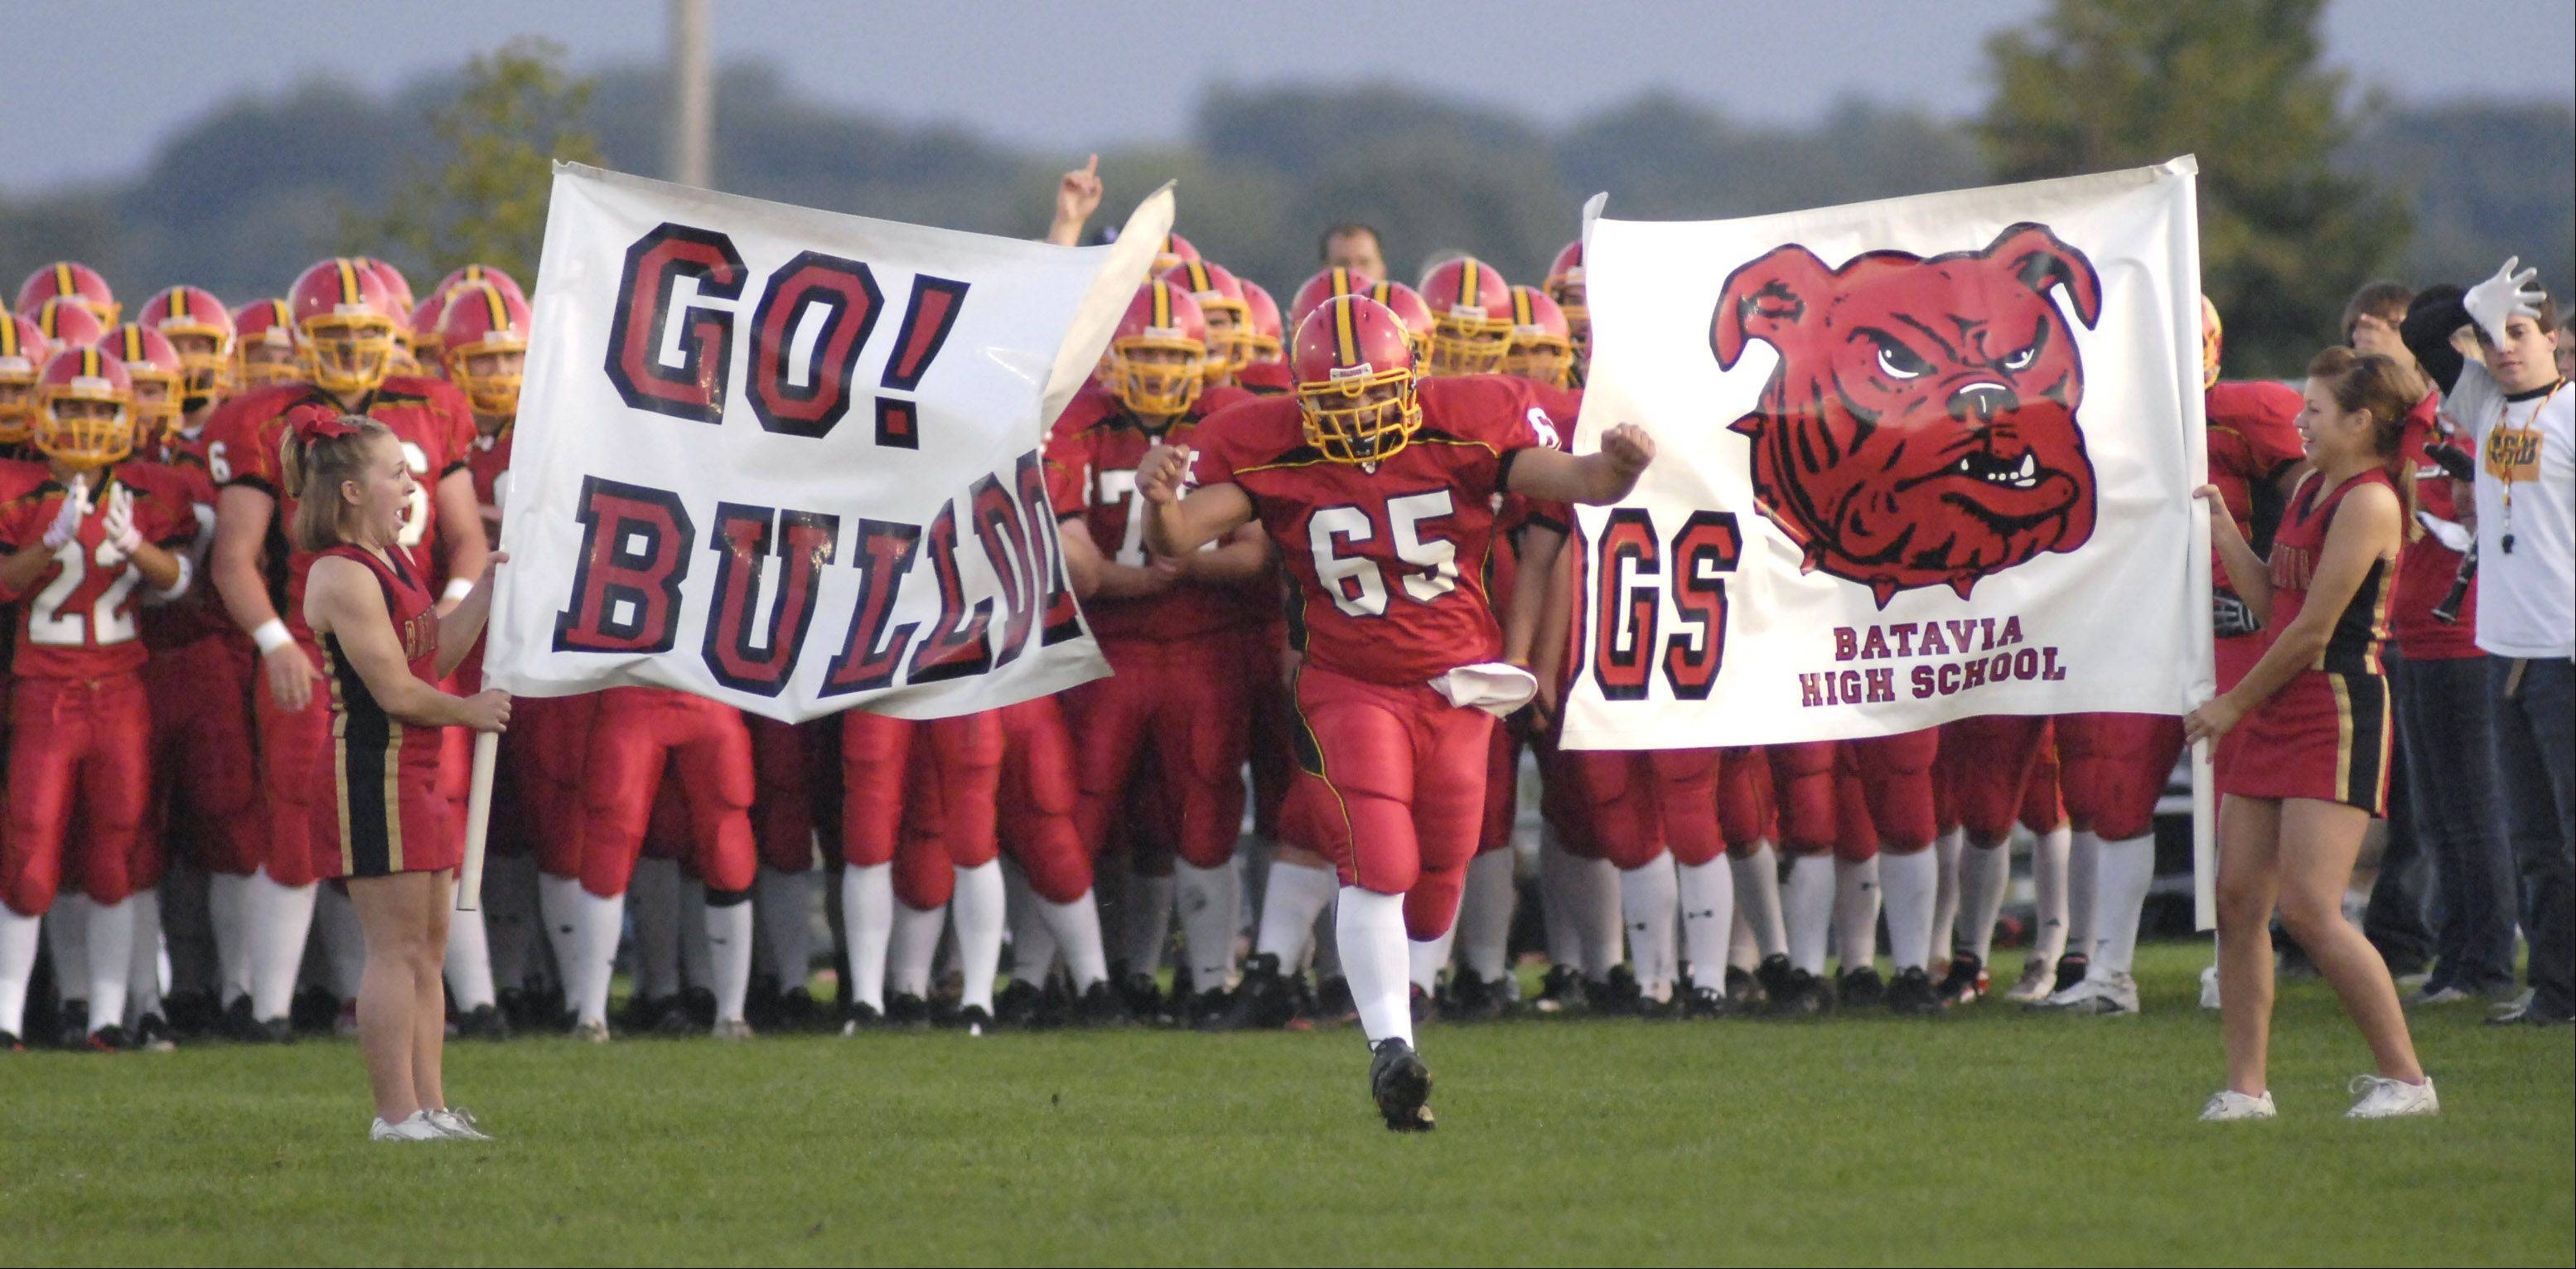 LAURA STOECKER/lstoecker@dailyherald.com, 2009Batavia High School's Sean Tews takes to the field for a 2009 home game. A plan has been outlined for improving the athletics fields at Batavia High School, including installing artificial turf.